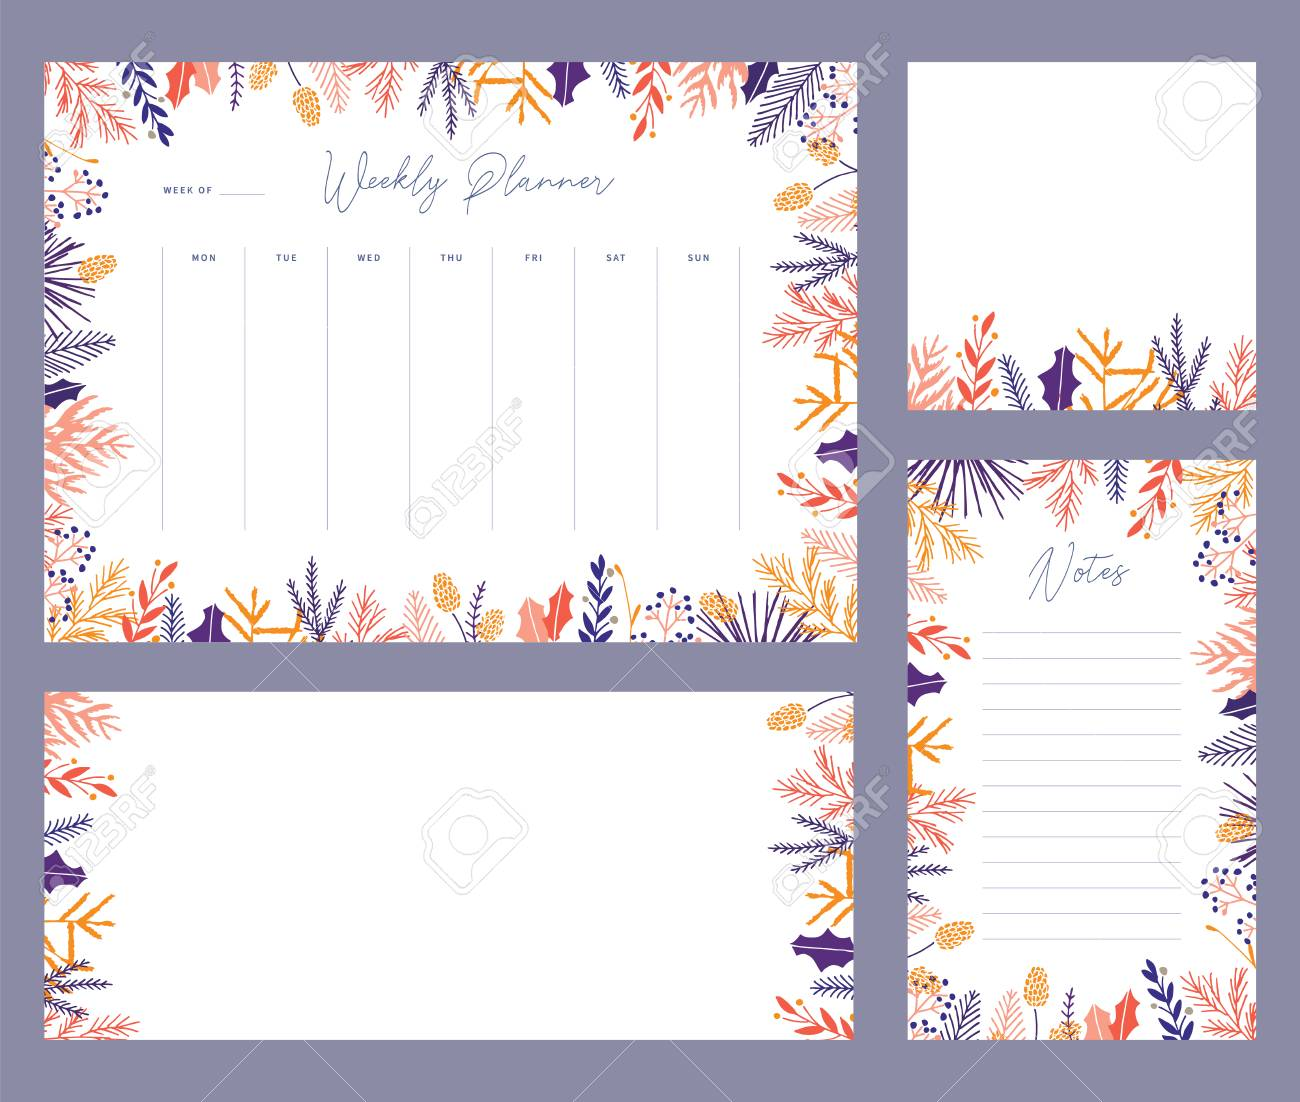 photograph about Weekly Planner Sheet named Lovely vector wintertime weekly planner templates. Classy Xmas..